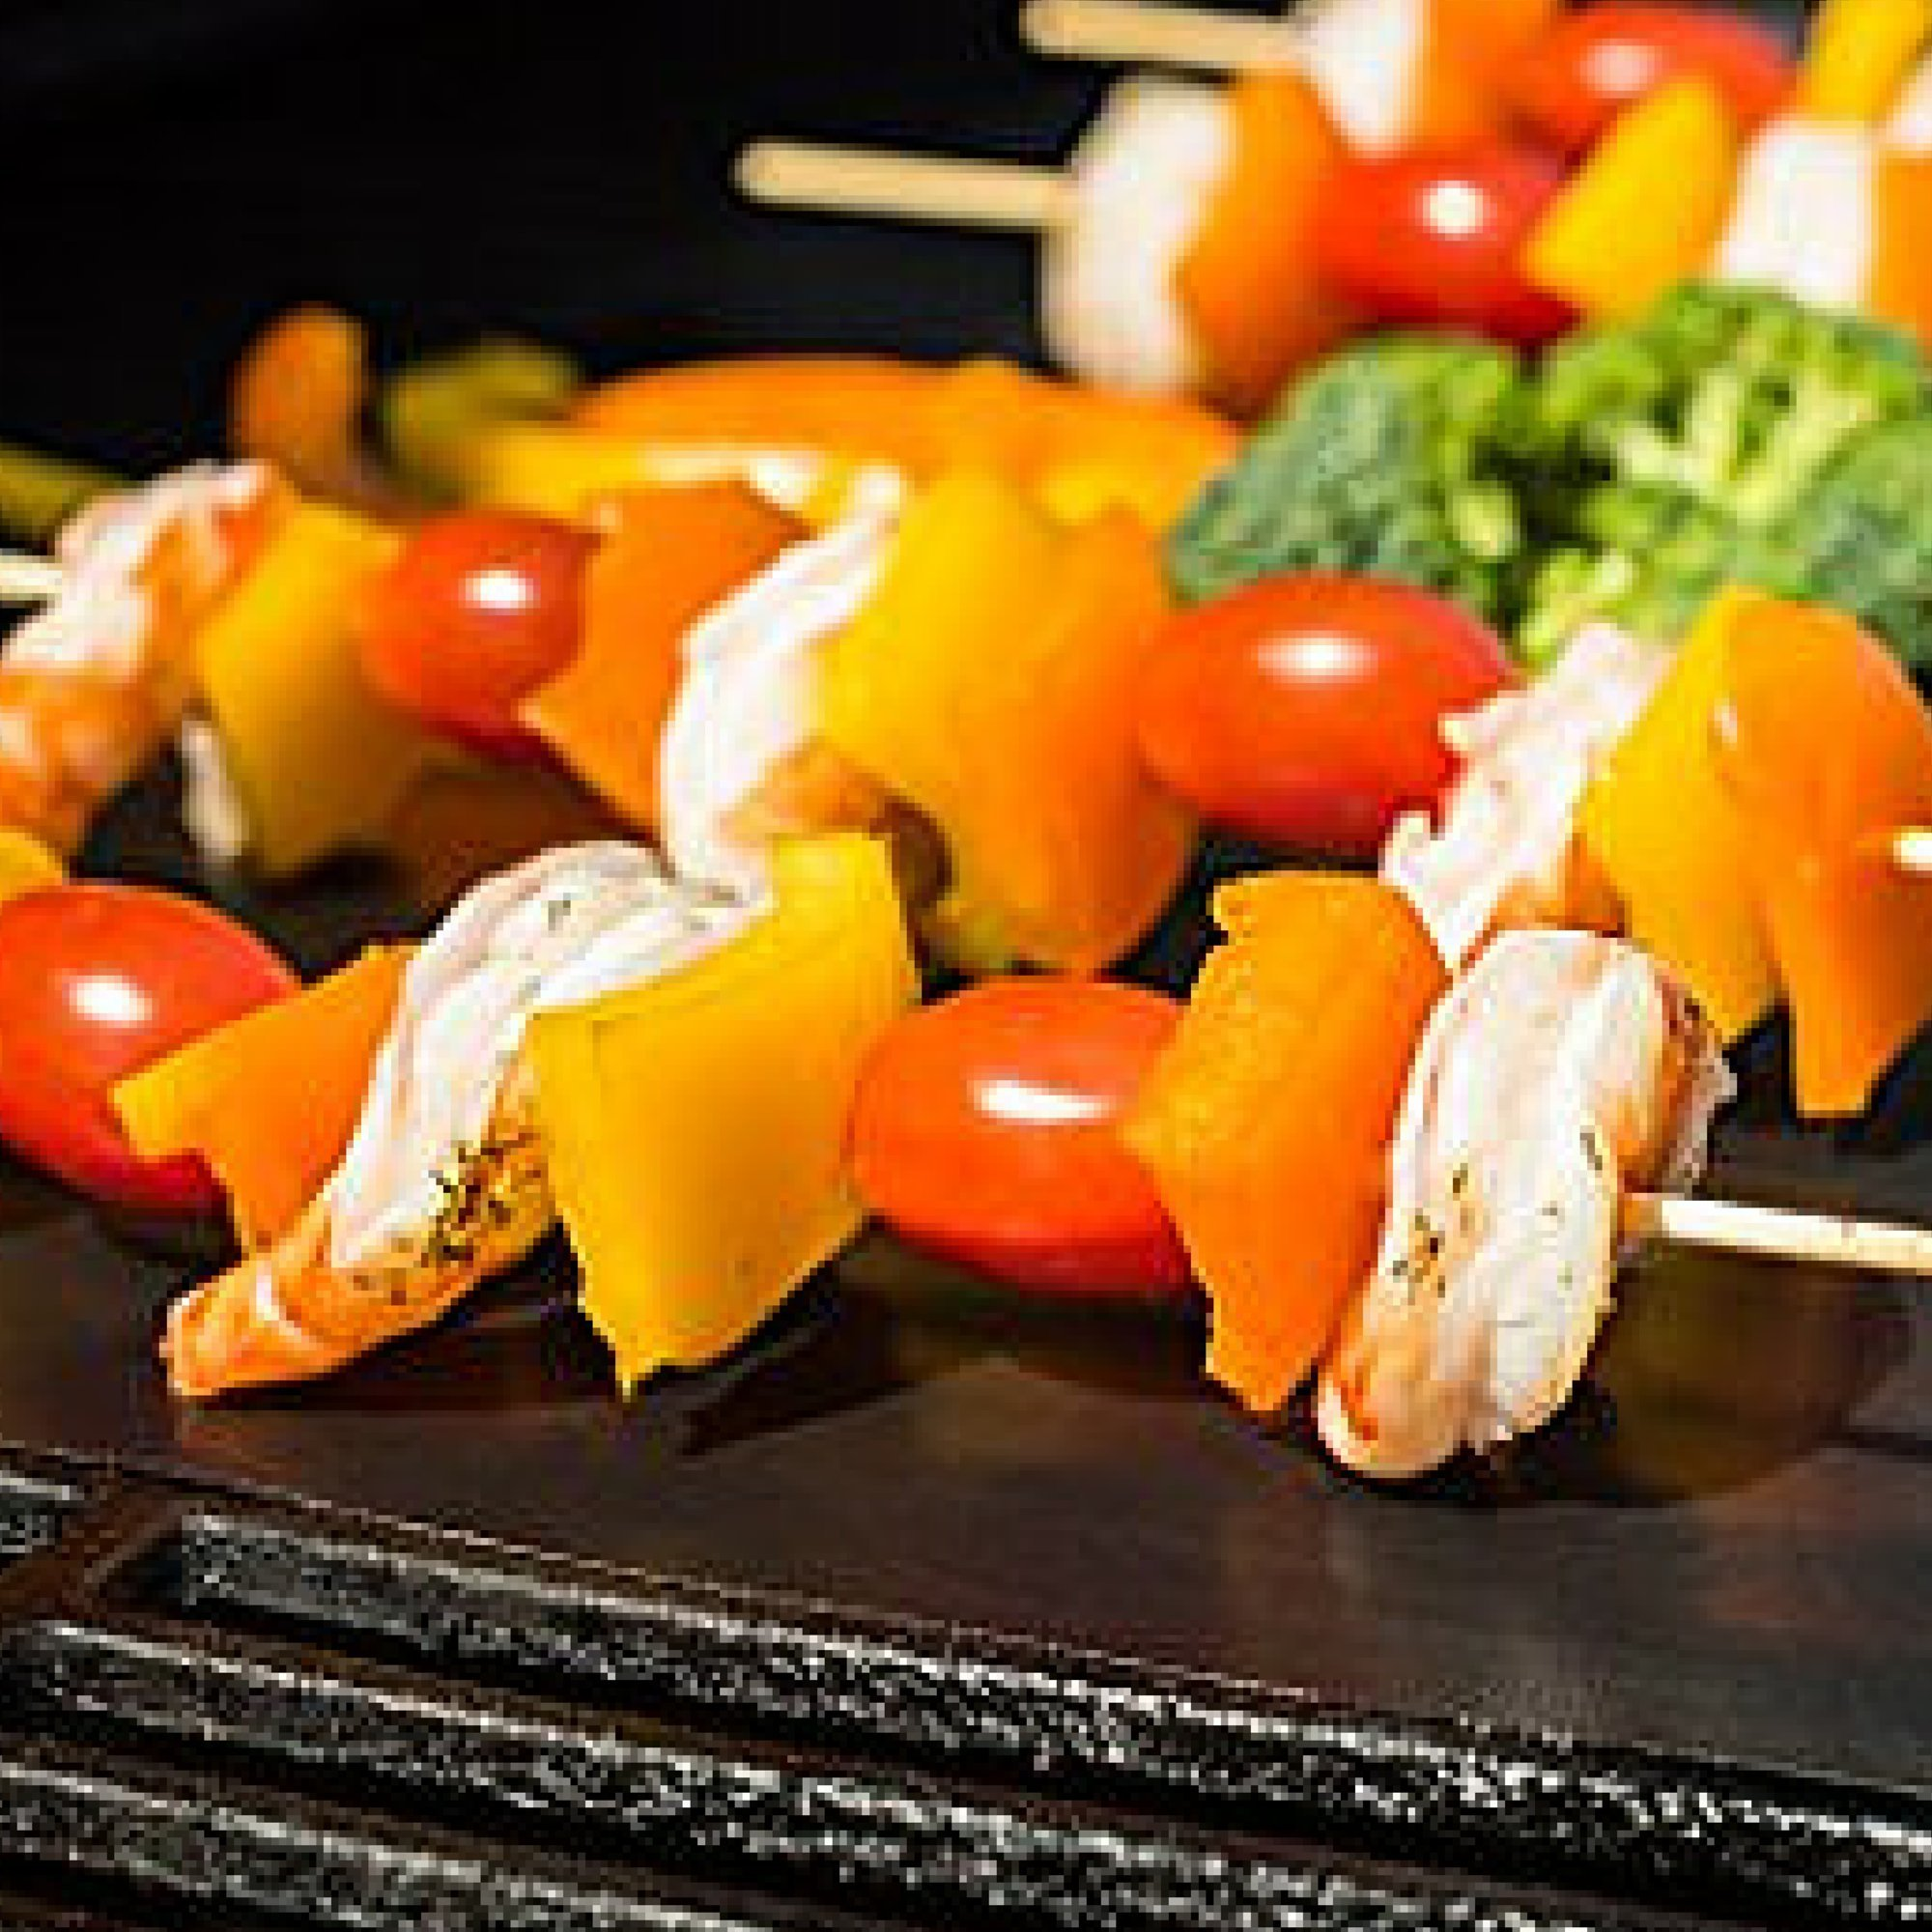 Kubzy BBQ Grill Mat Set of 4 16'' x 13'' Non-Stick, Durable, Heat Resistant - Perfect for Barbecue, Grilling, Oven, Cooking, and Baking by Kubzy Grill Mat (Image #4)